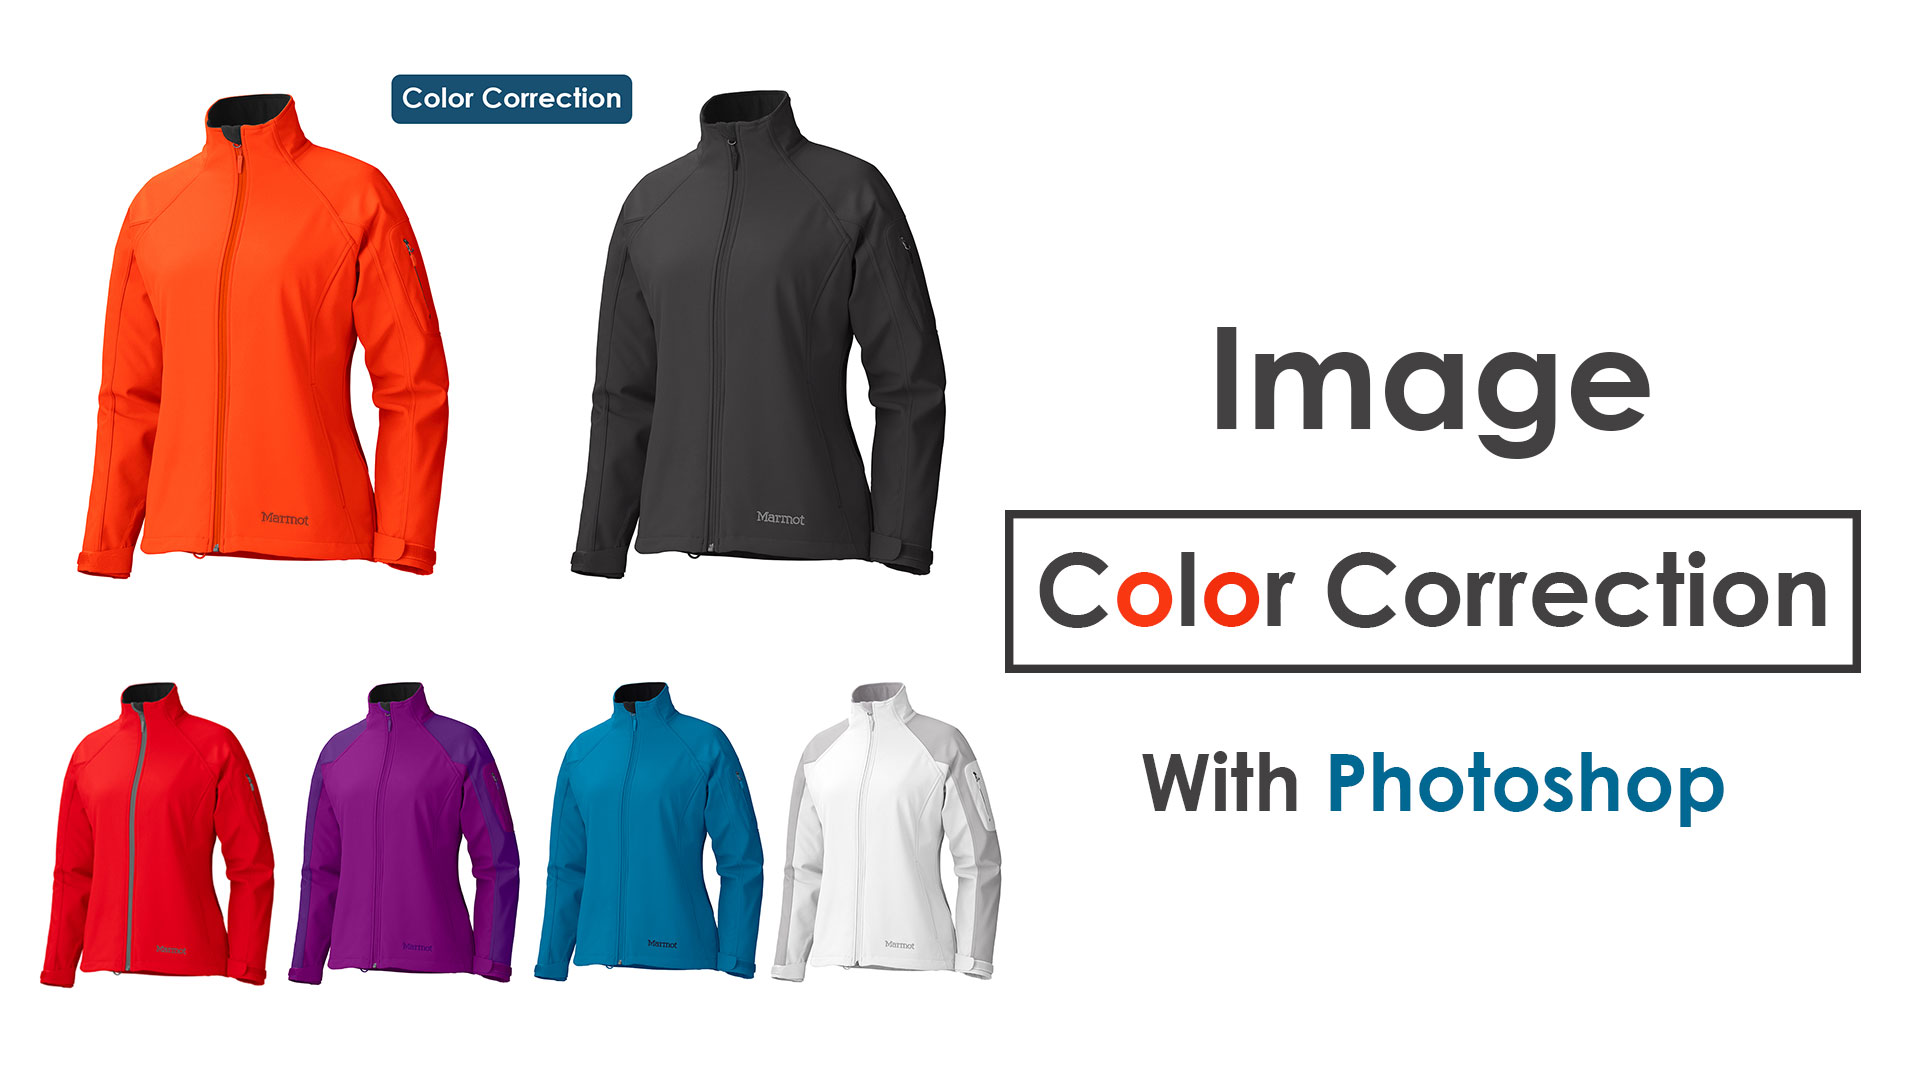 Image-Color-Correction-With-Photoshop